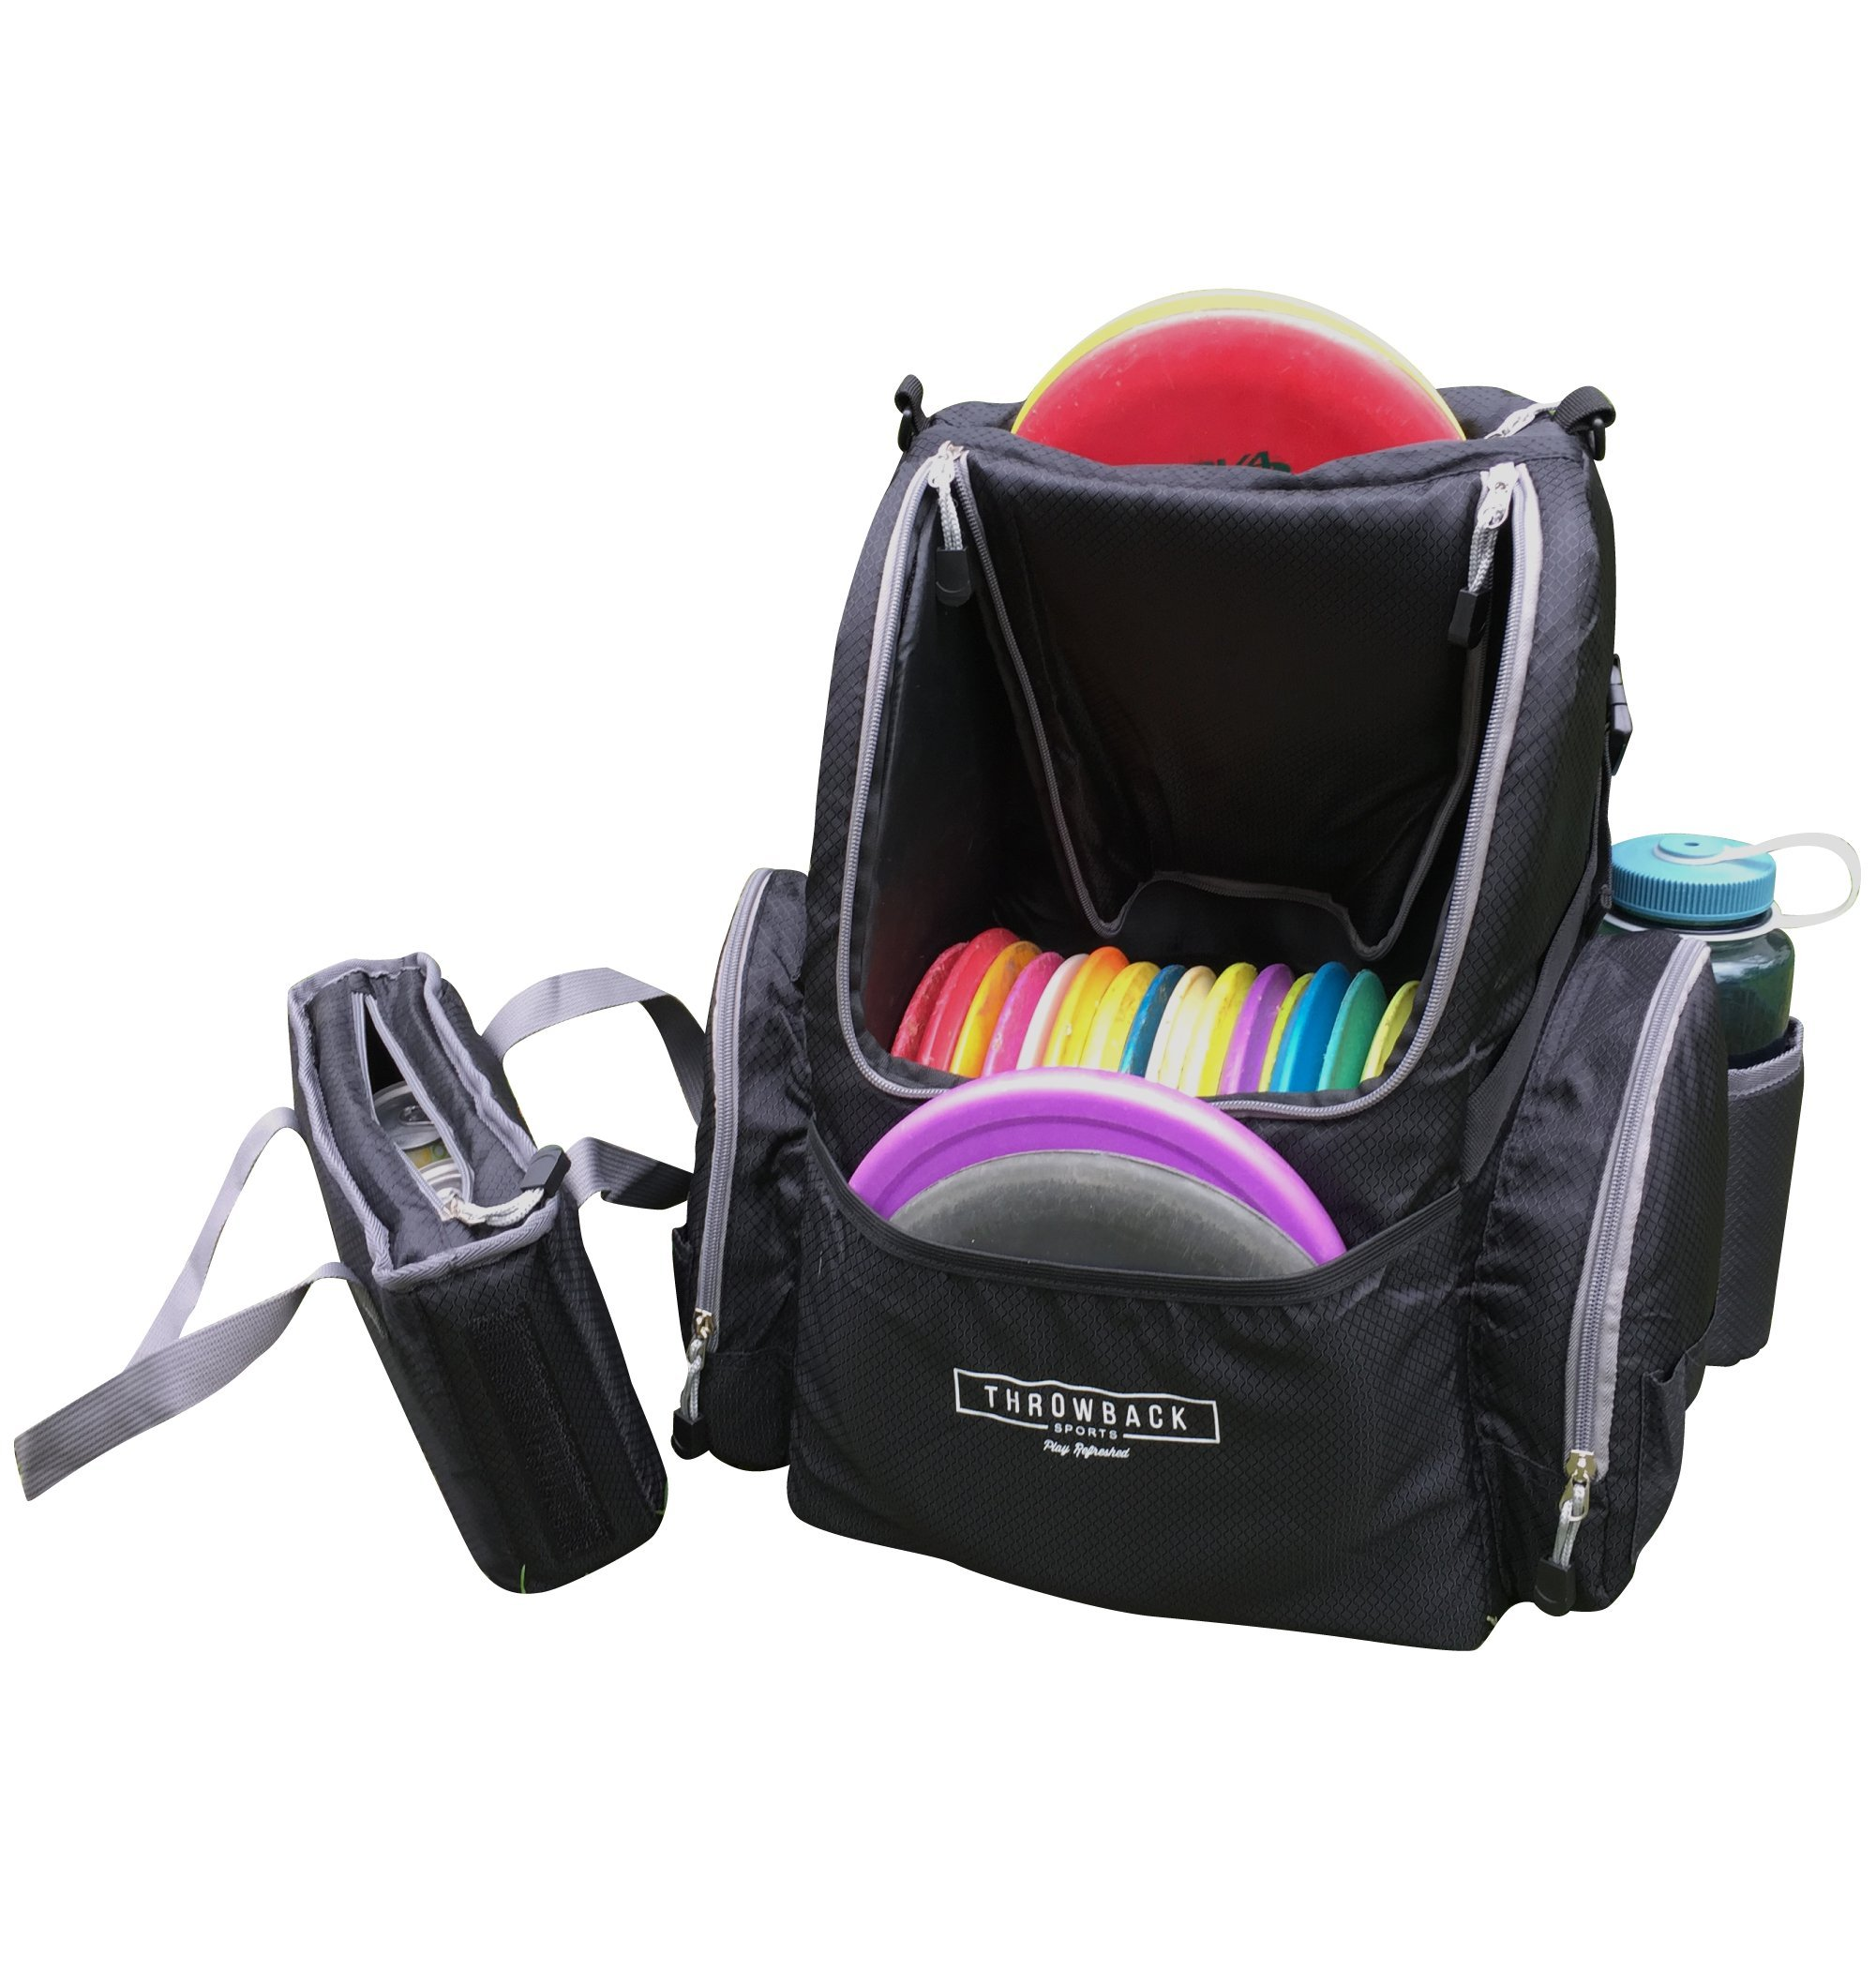 Throwback ModPack - Disc Golf Backpack With Removable Cooler Sleeve - Frisbee Disc Golf Bag With Cooler - Holds Up To 20 Discs & 3 Cans